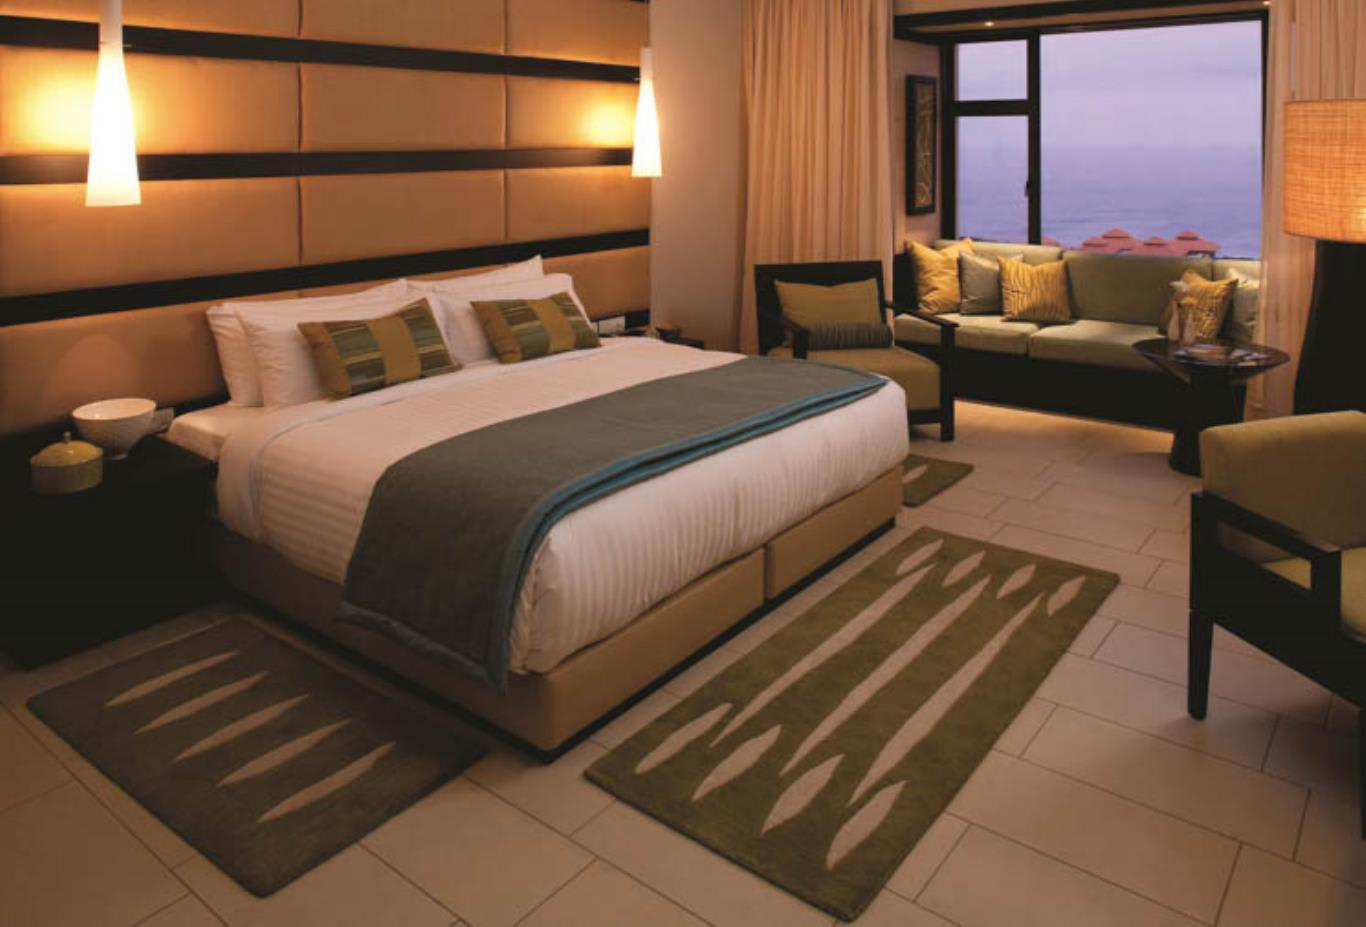 Deluxe Room bedroom interior 2